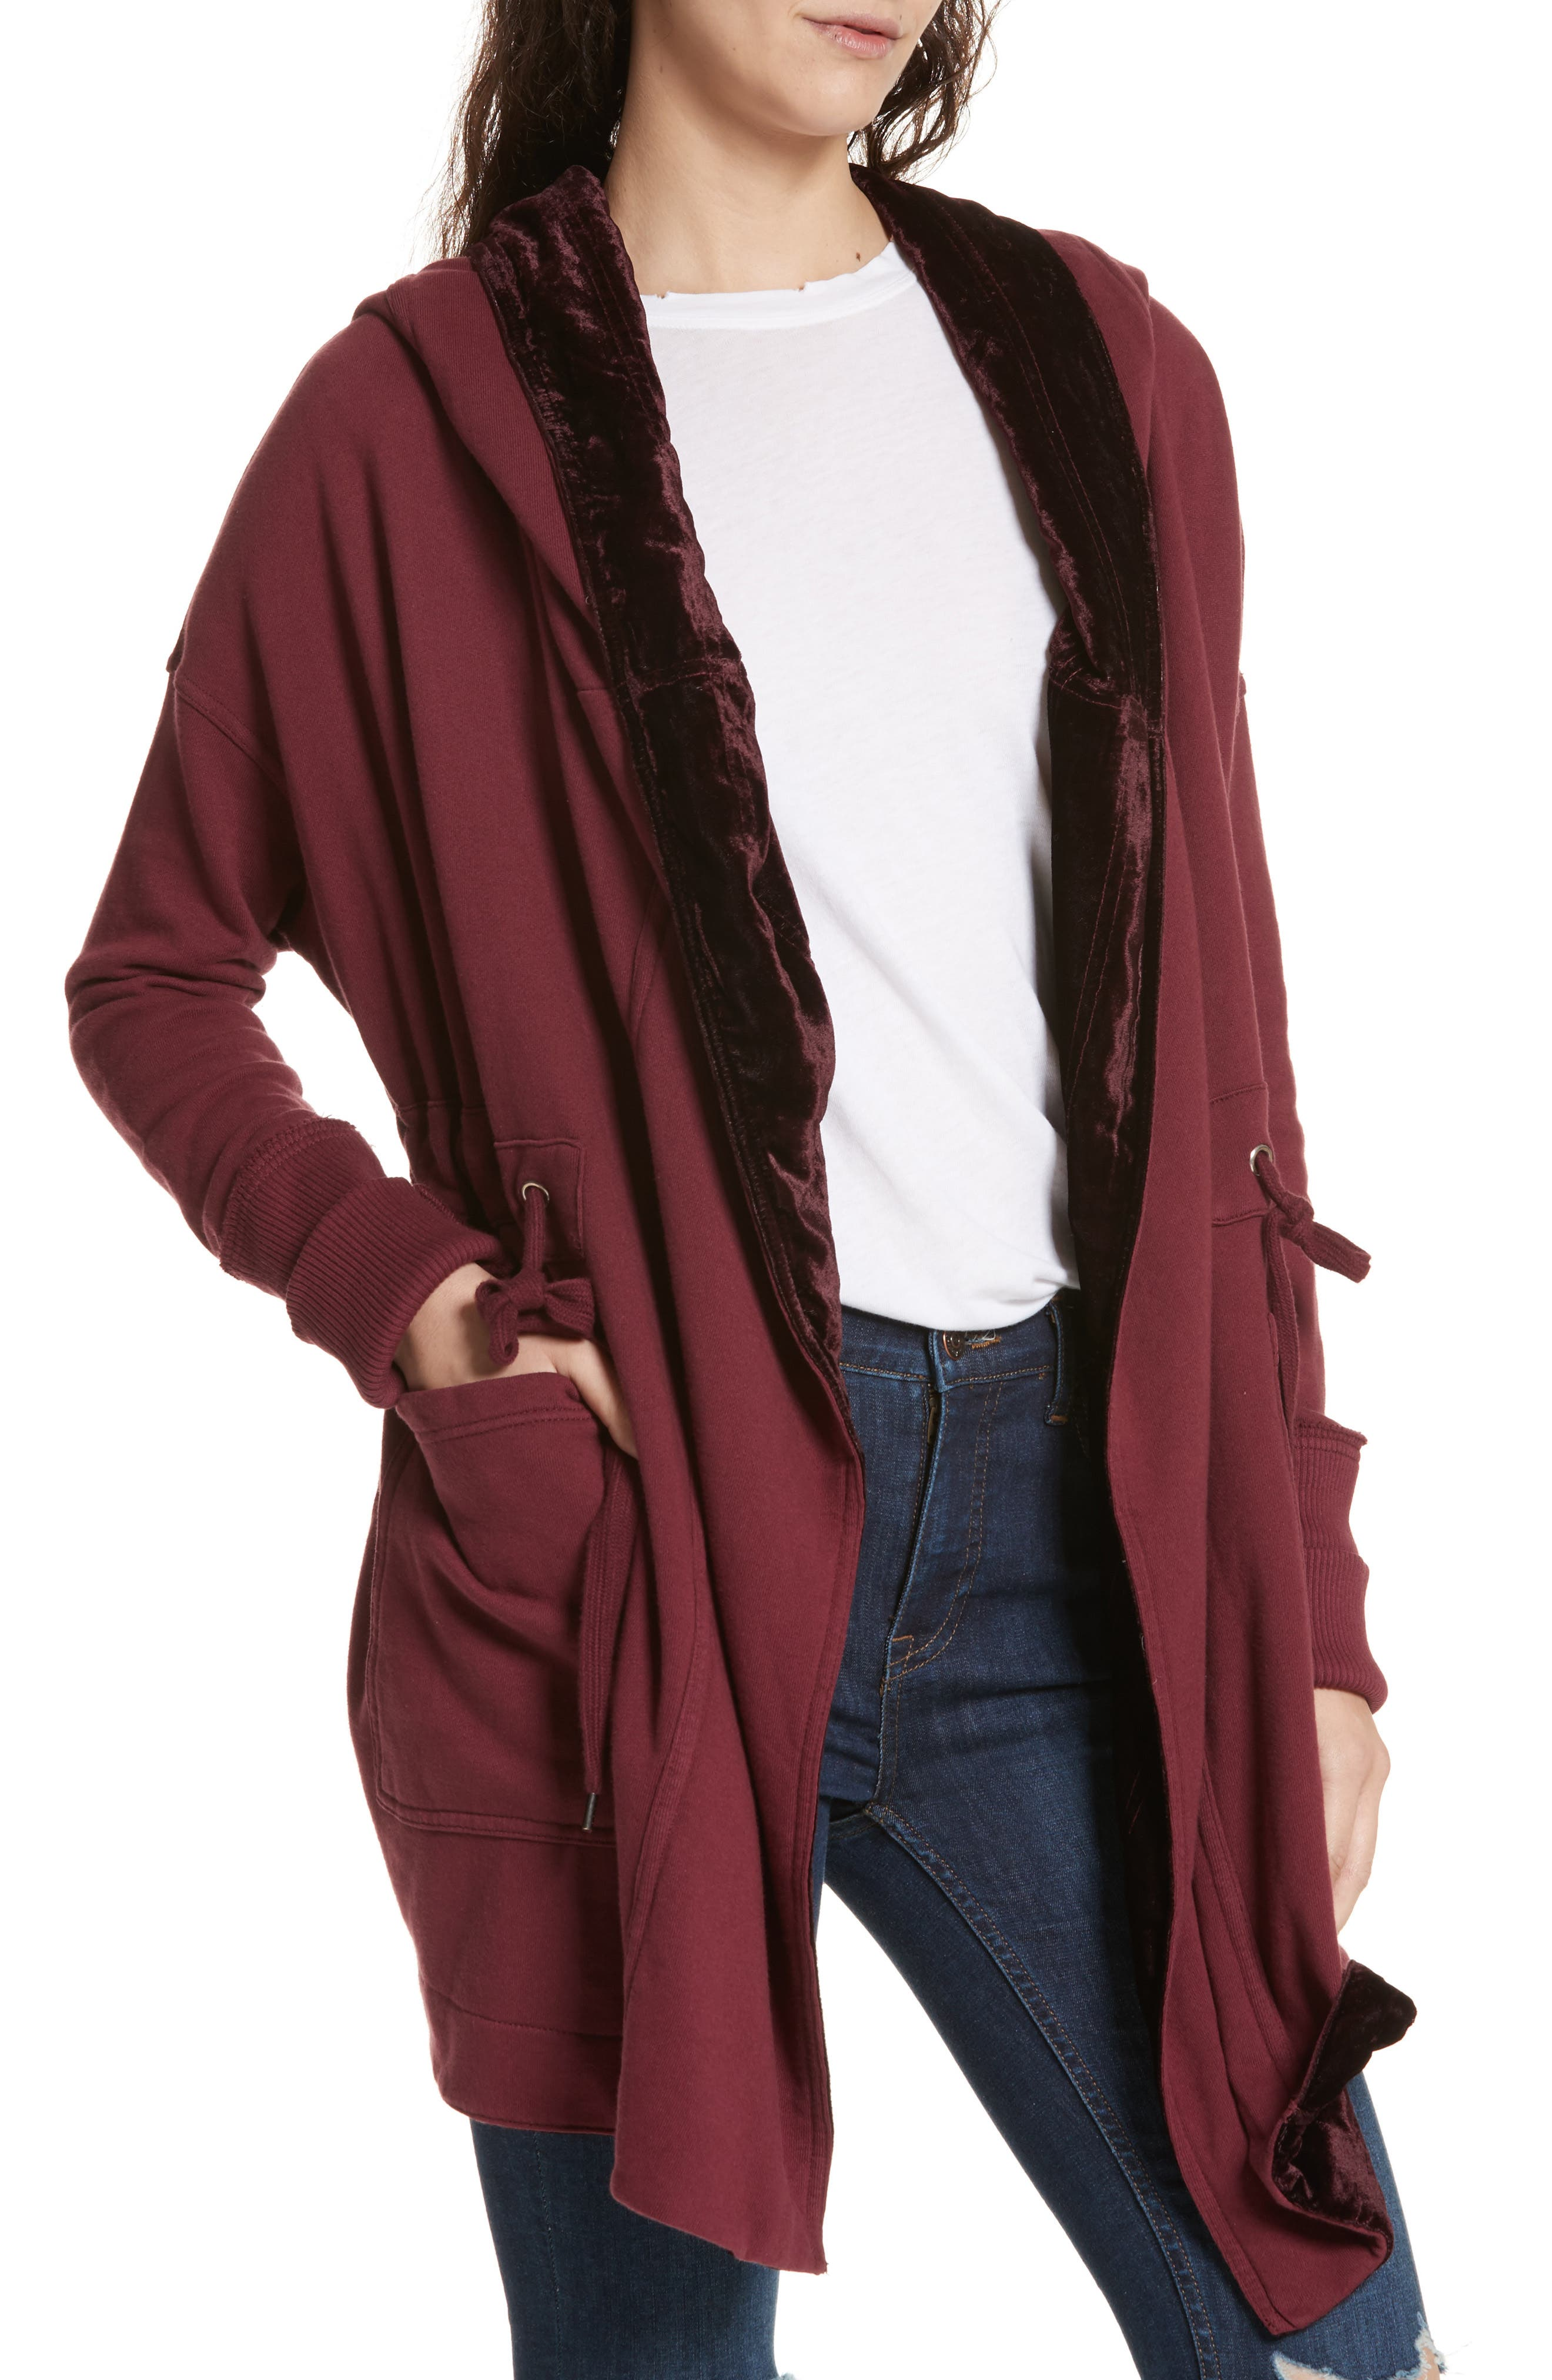 Westwood Cardigan,                             Alternate thumbnail 8, color,